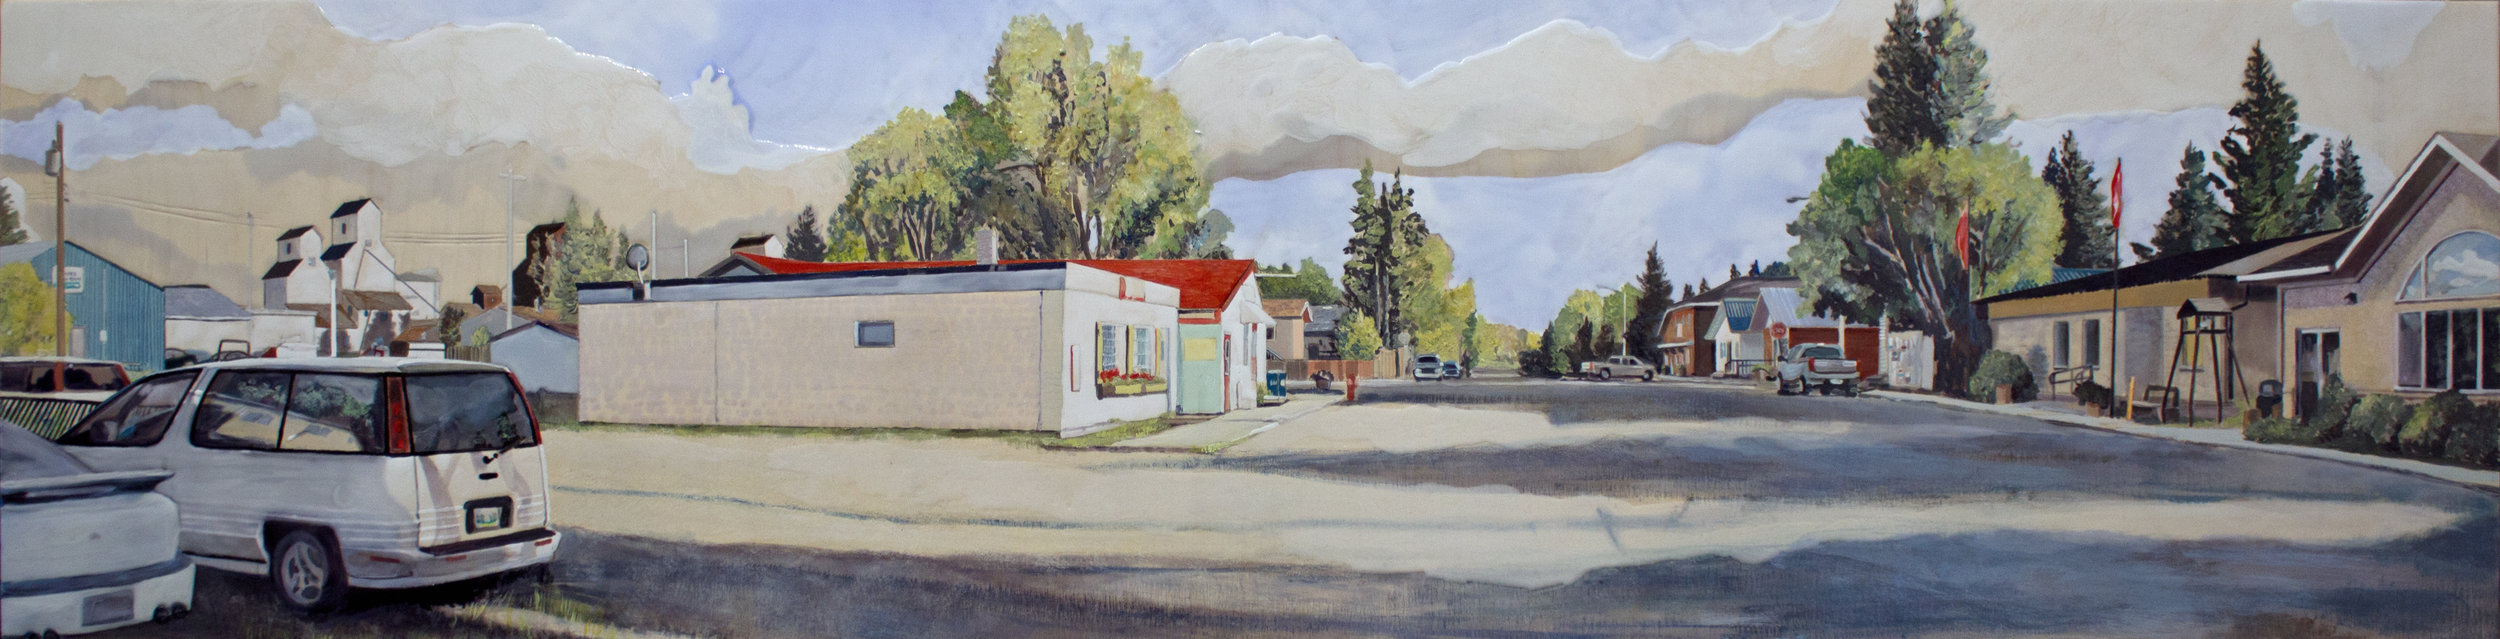 013 QSCP Lunch in Town Acrylic Panel 12%22 x 48%22 2016.jpg